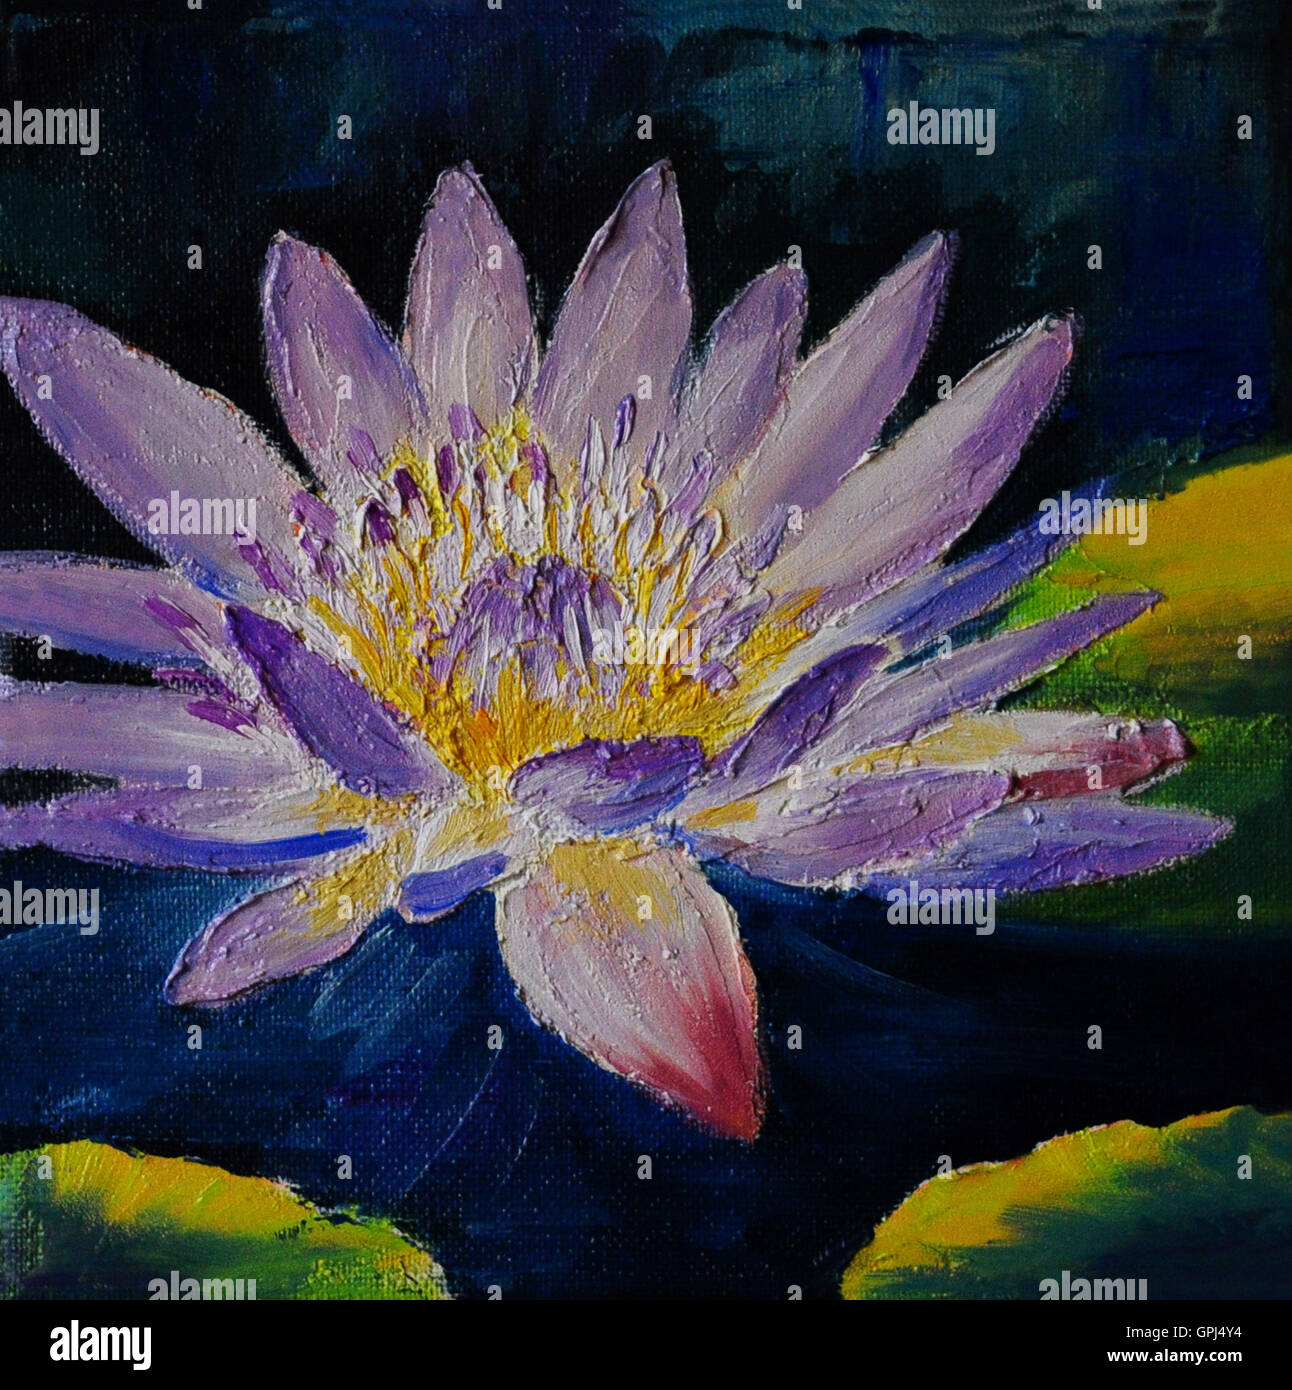 Oil Painting Purple Lotus Flower Abstract Drawing Stock Photo